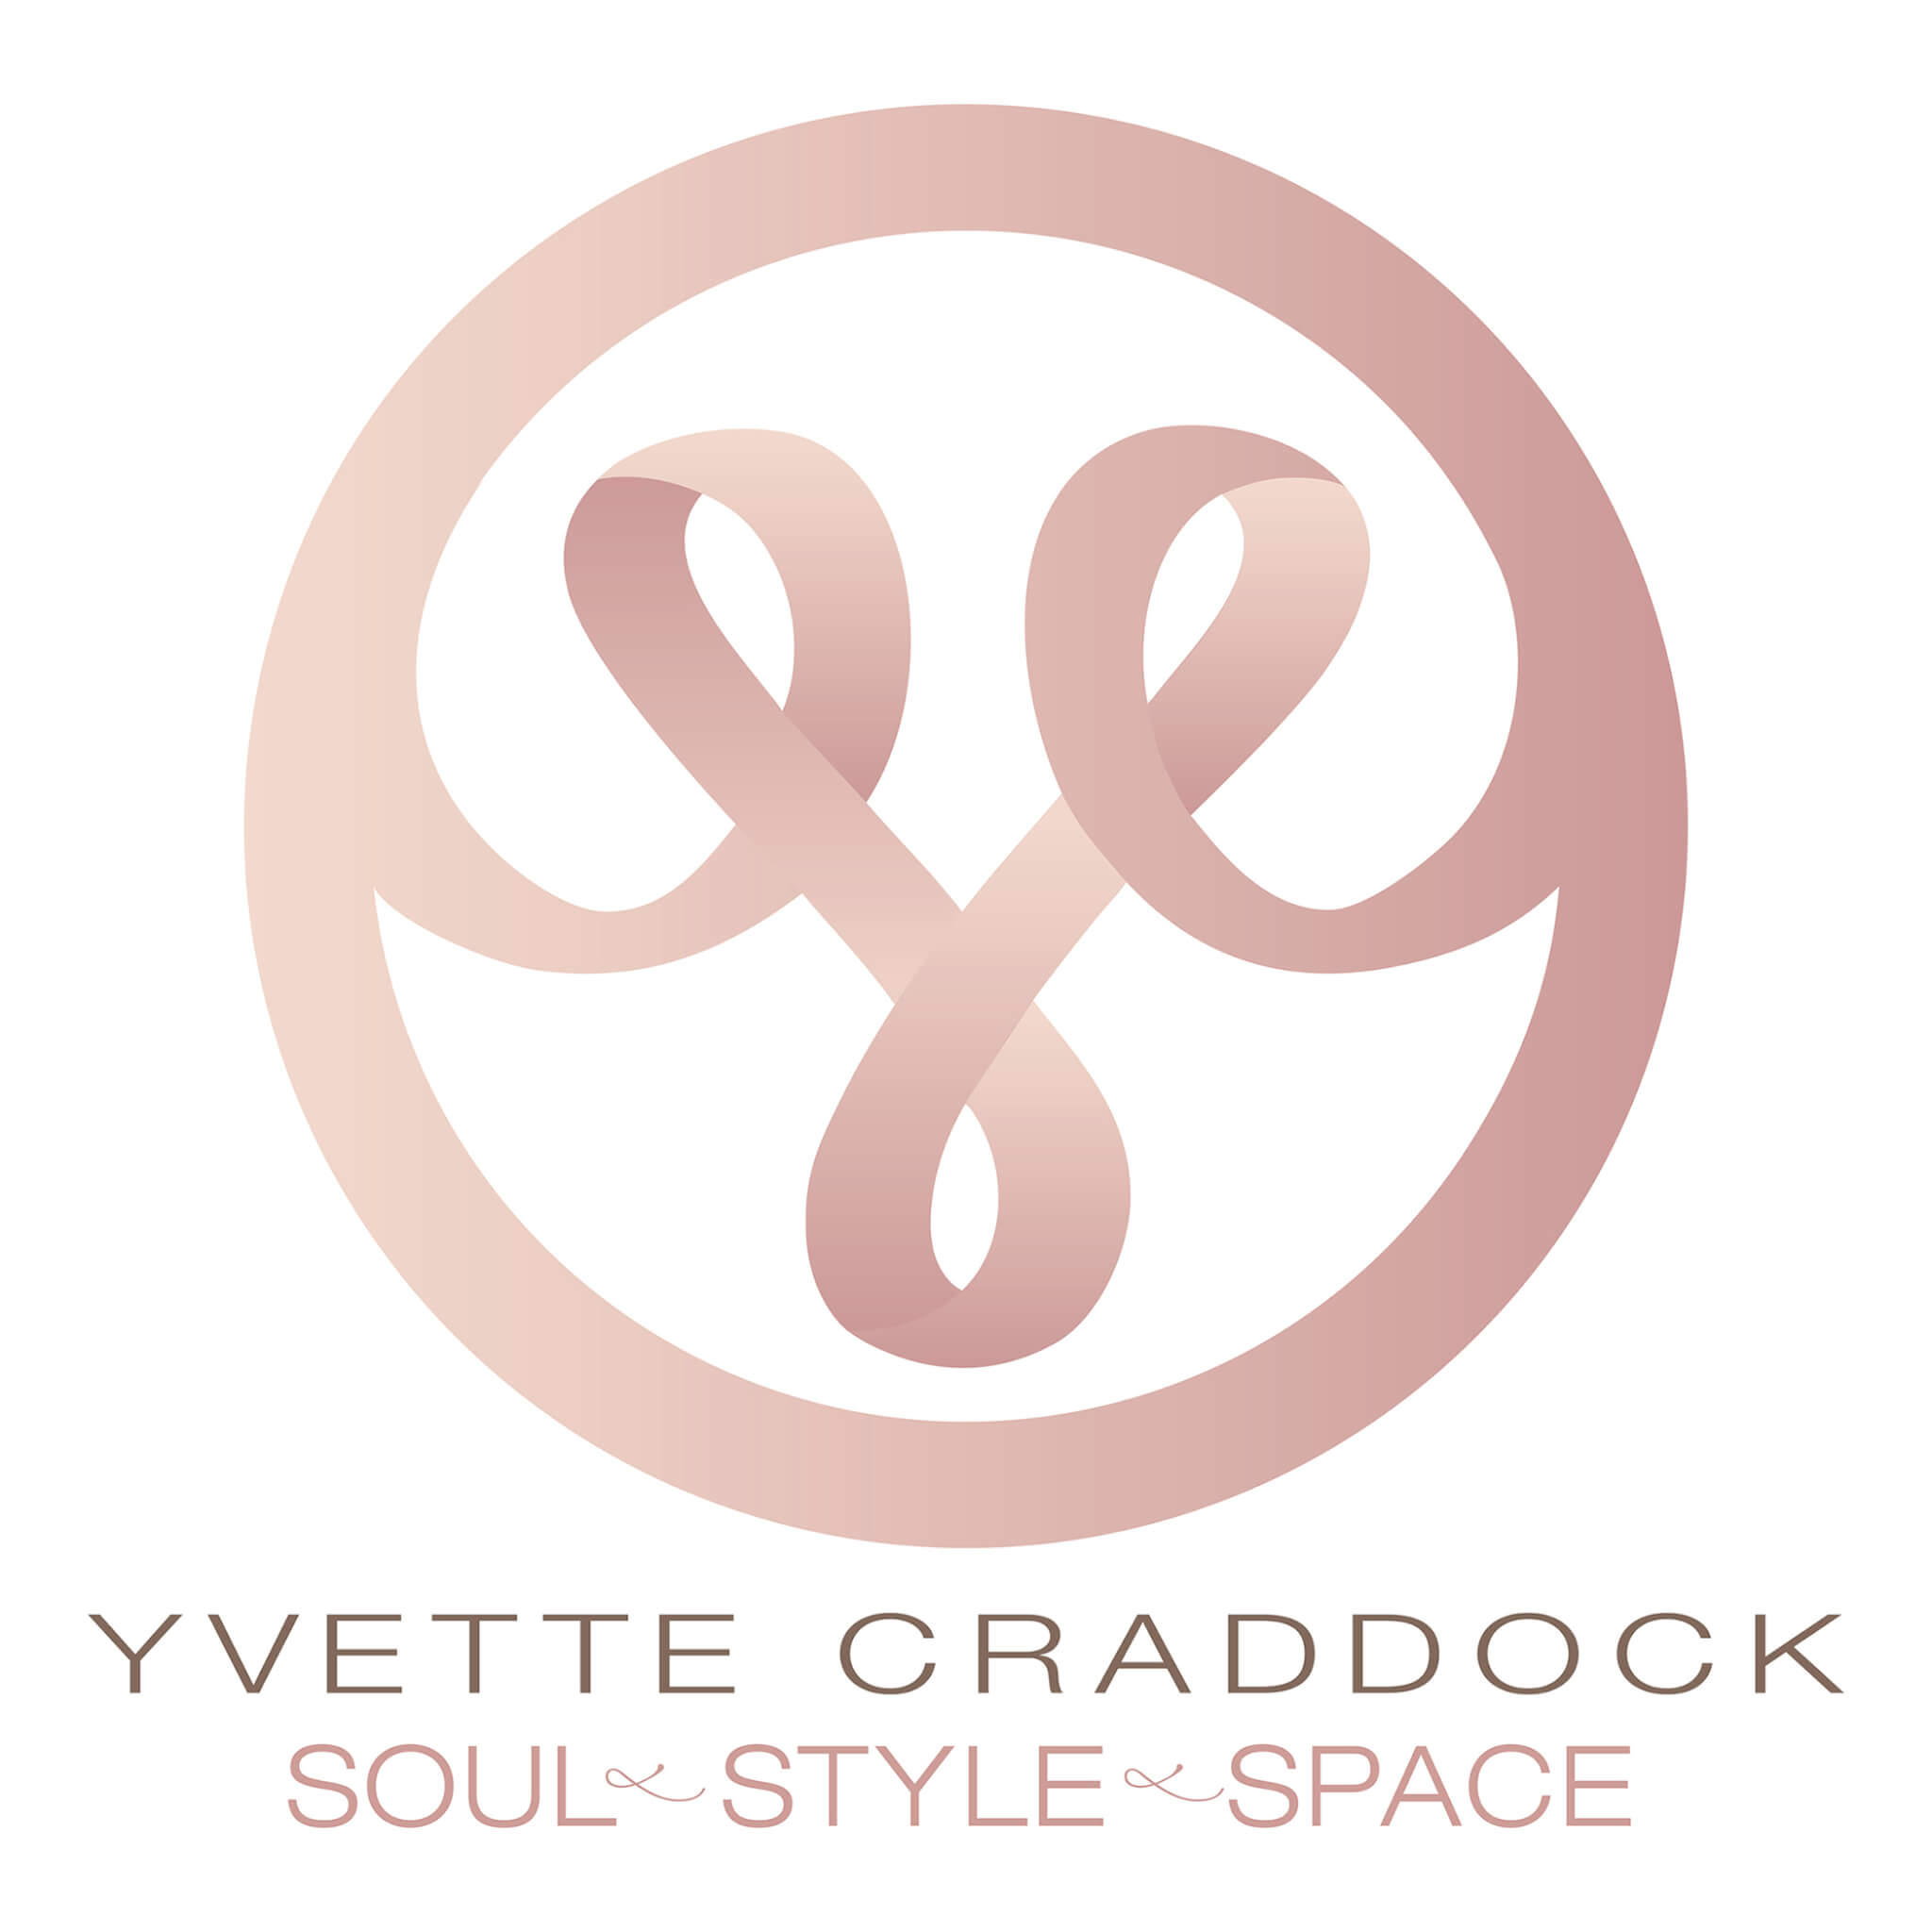 Yvette Craddock Designs - Distinctive Modern Design